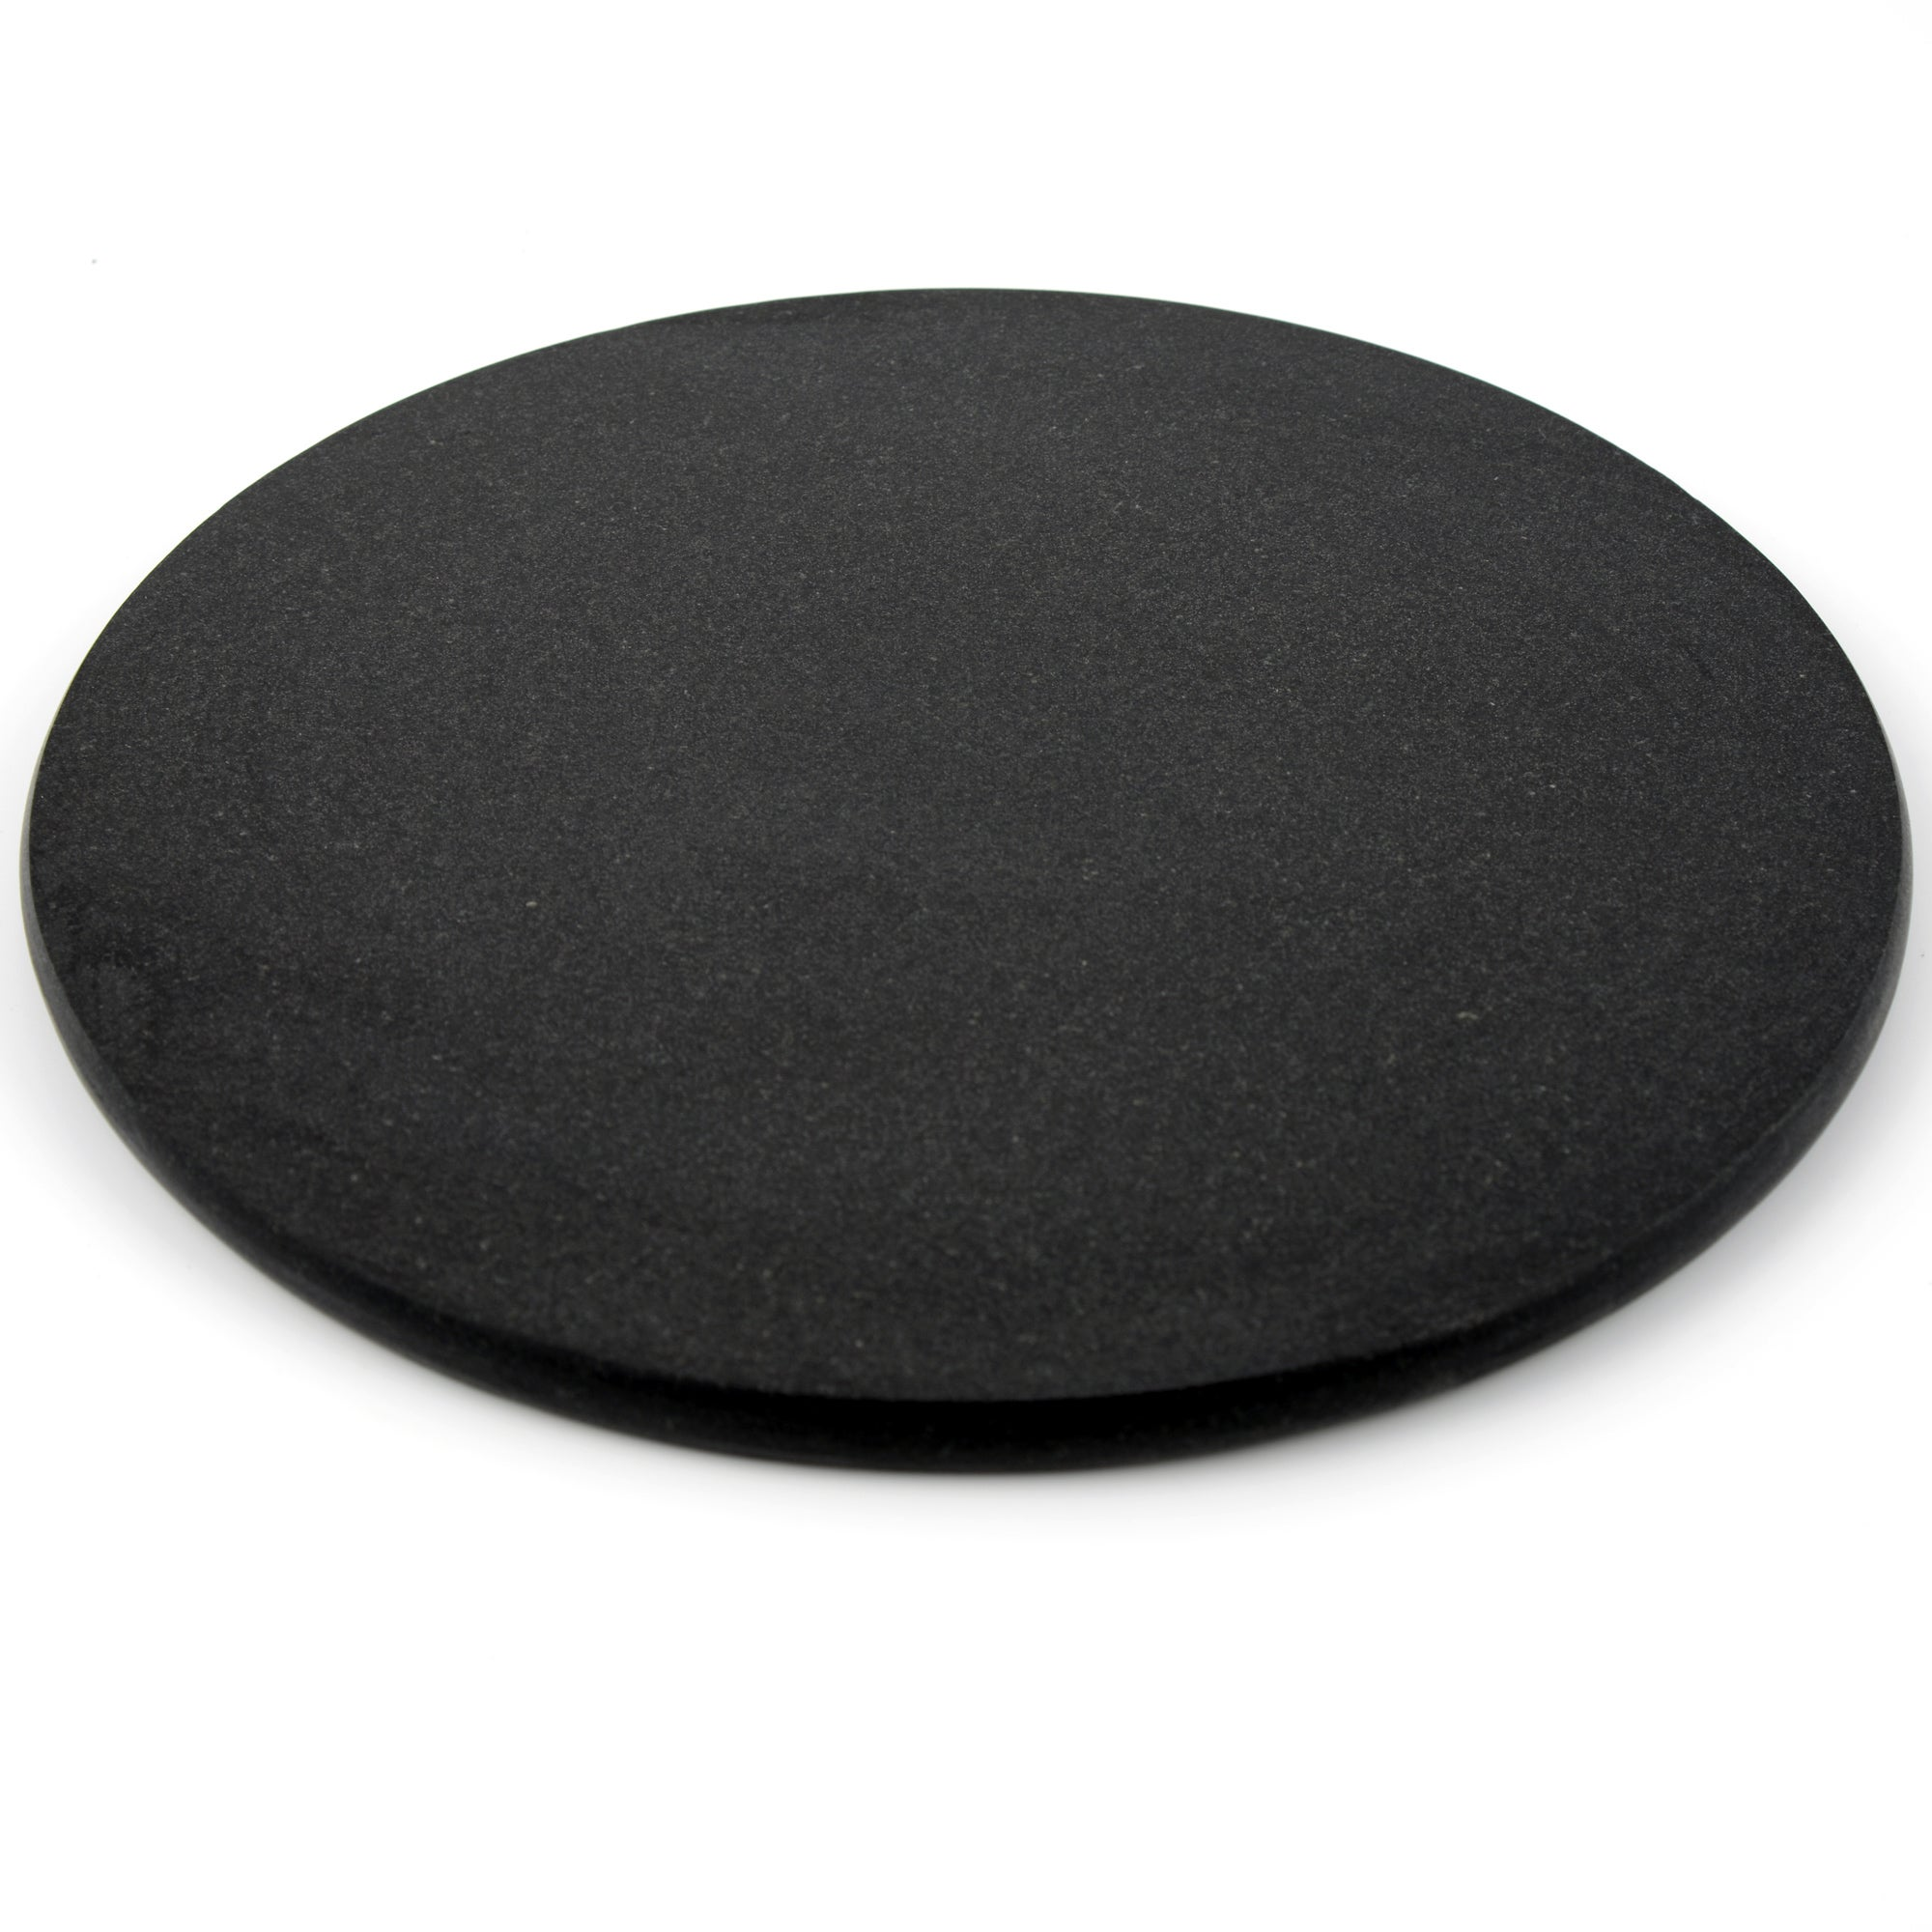 Black Granite Round Work Surface Protector